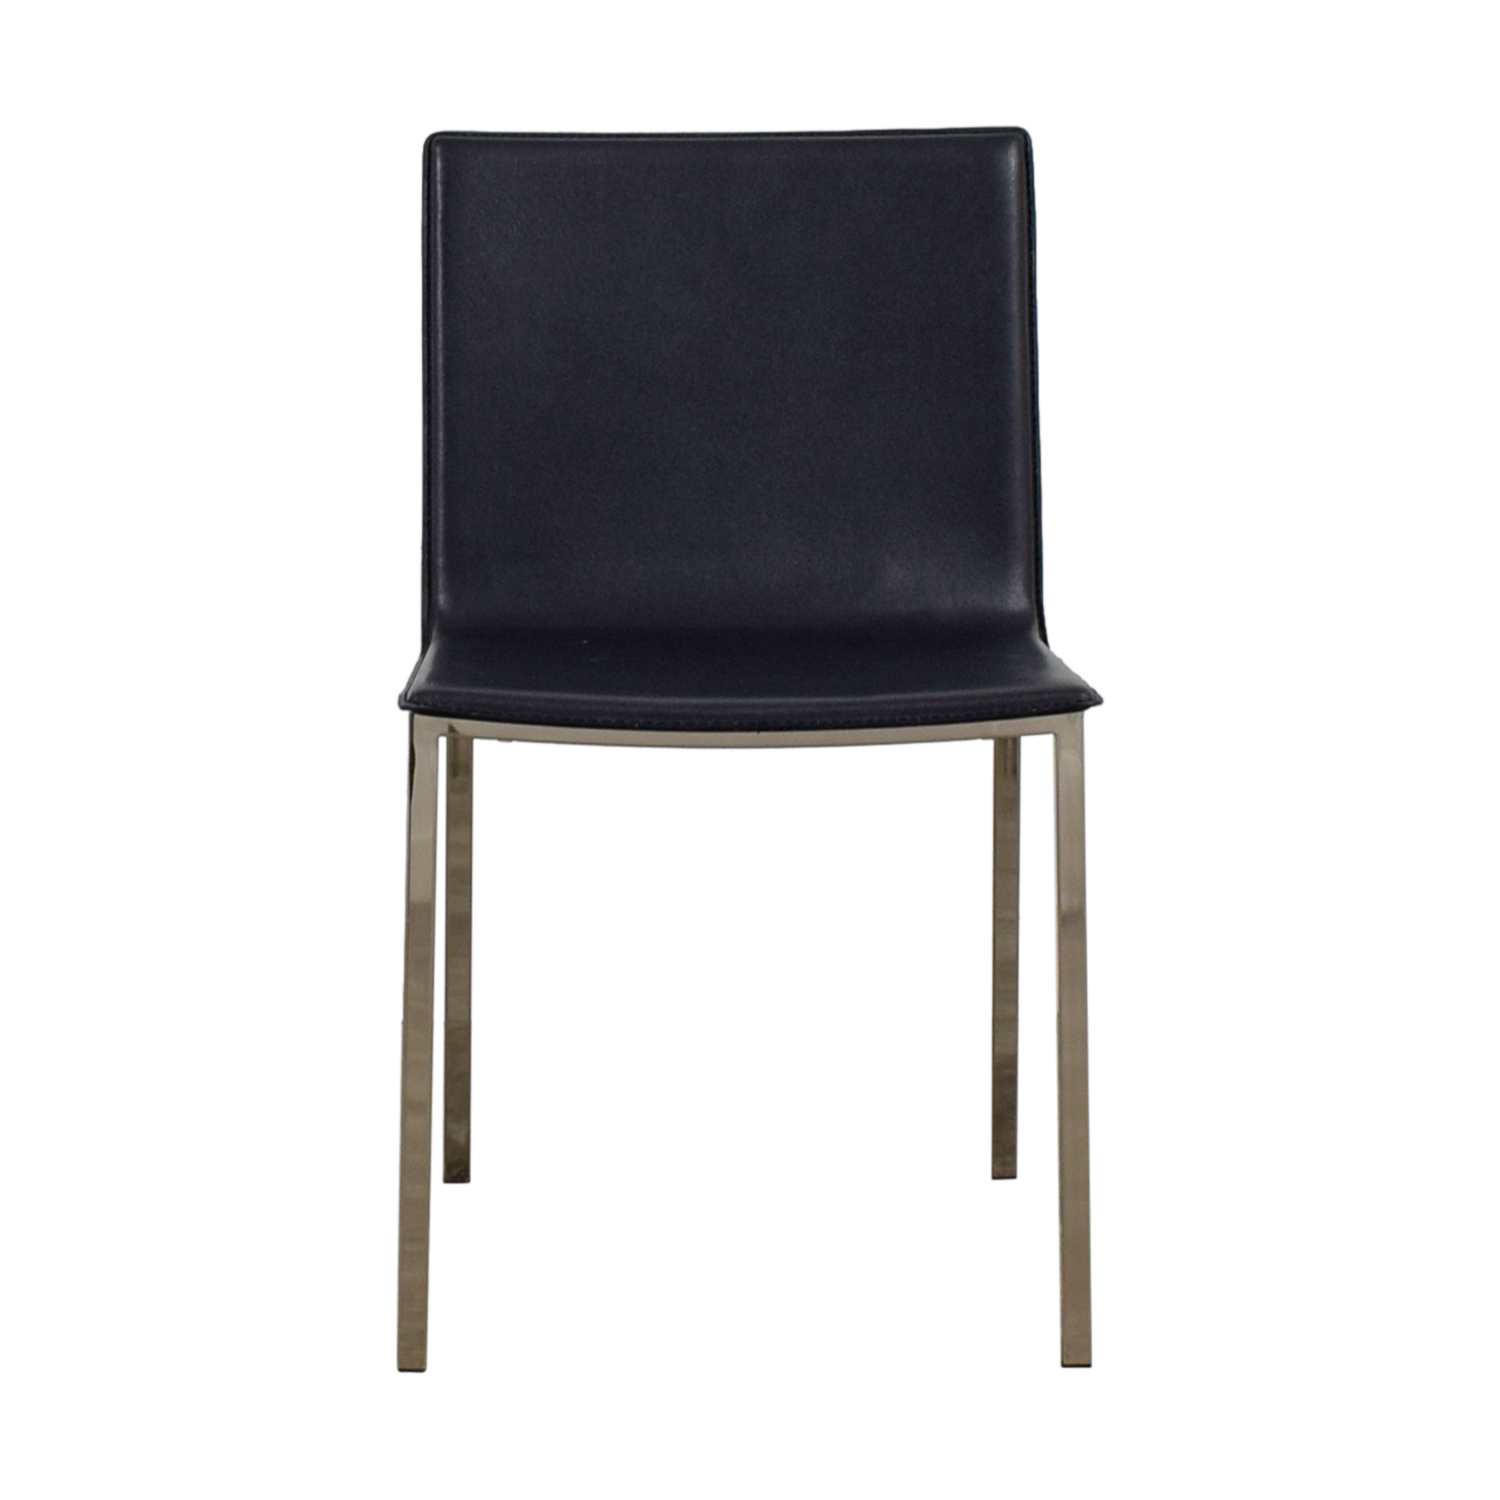 Grey Desk Chair used